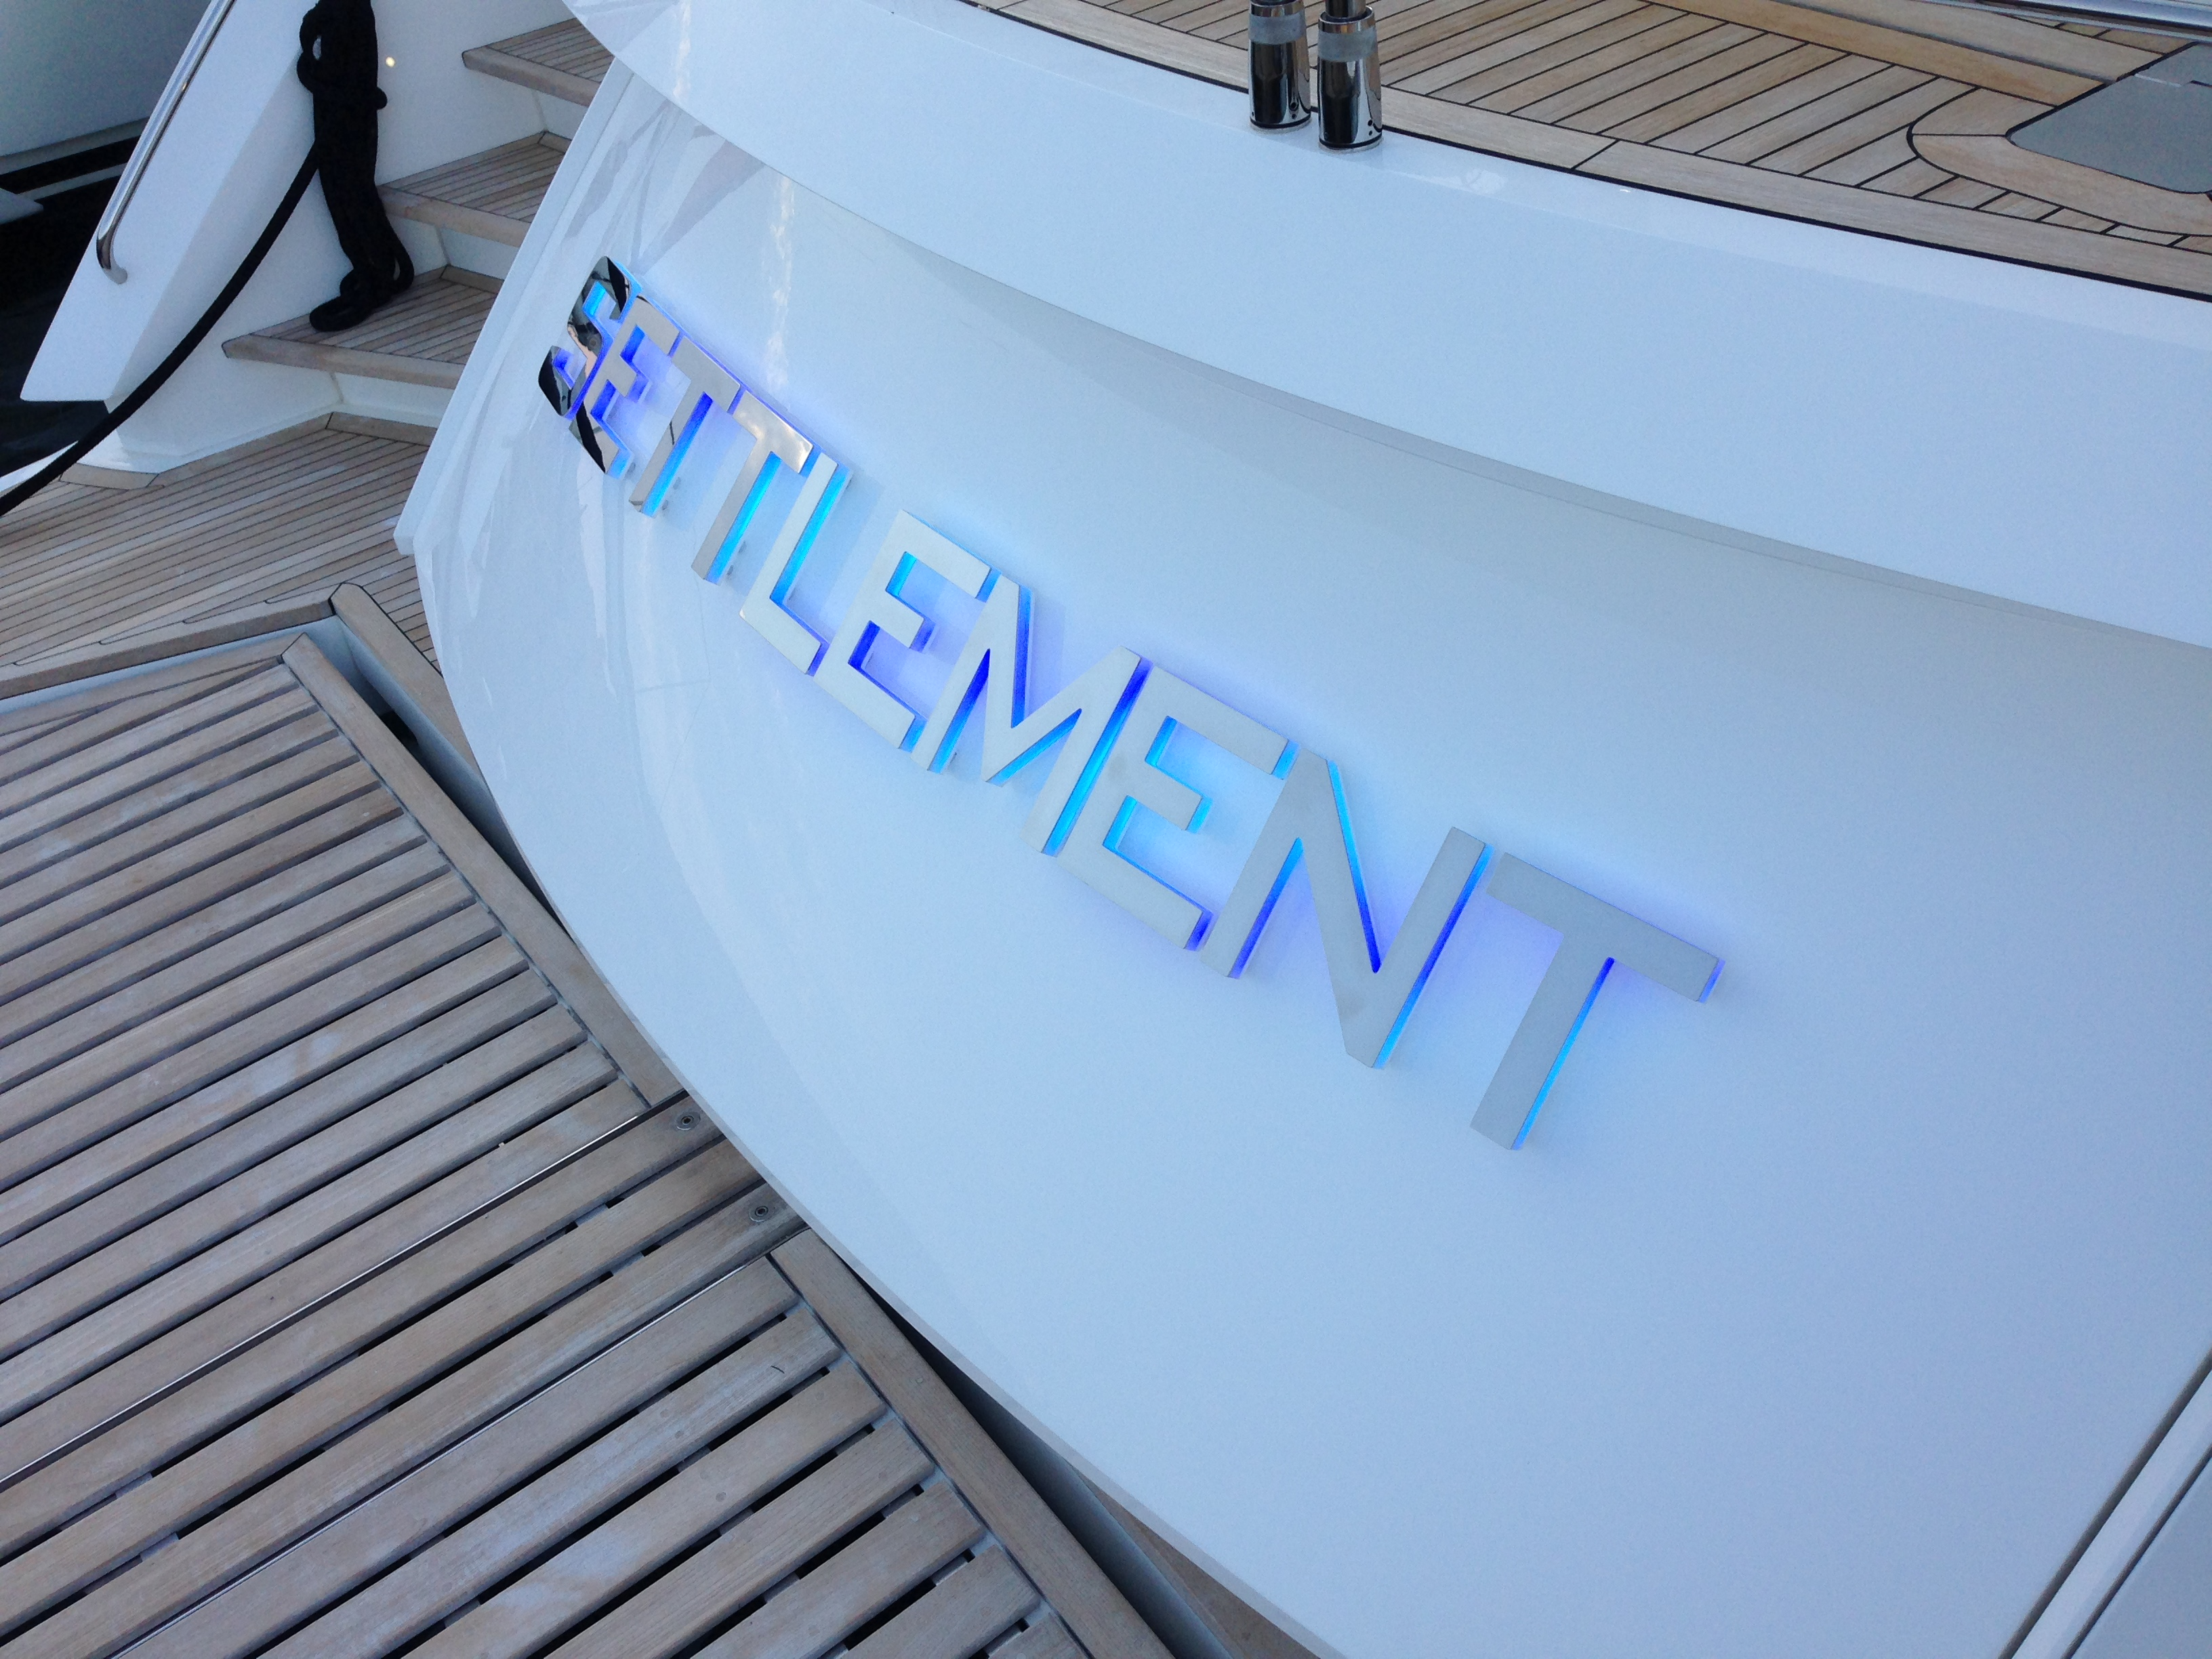 Settlement Yacht Sign - High Mirror Polished Stainless Steel 316 Grade